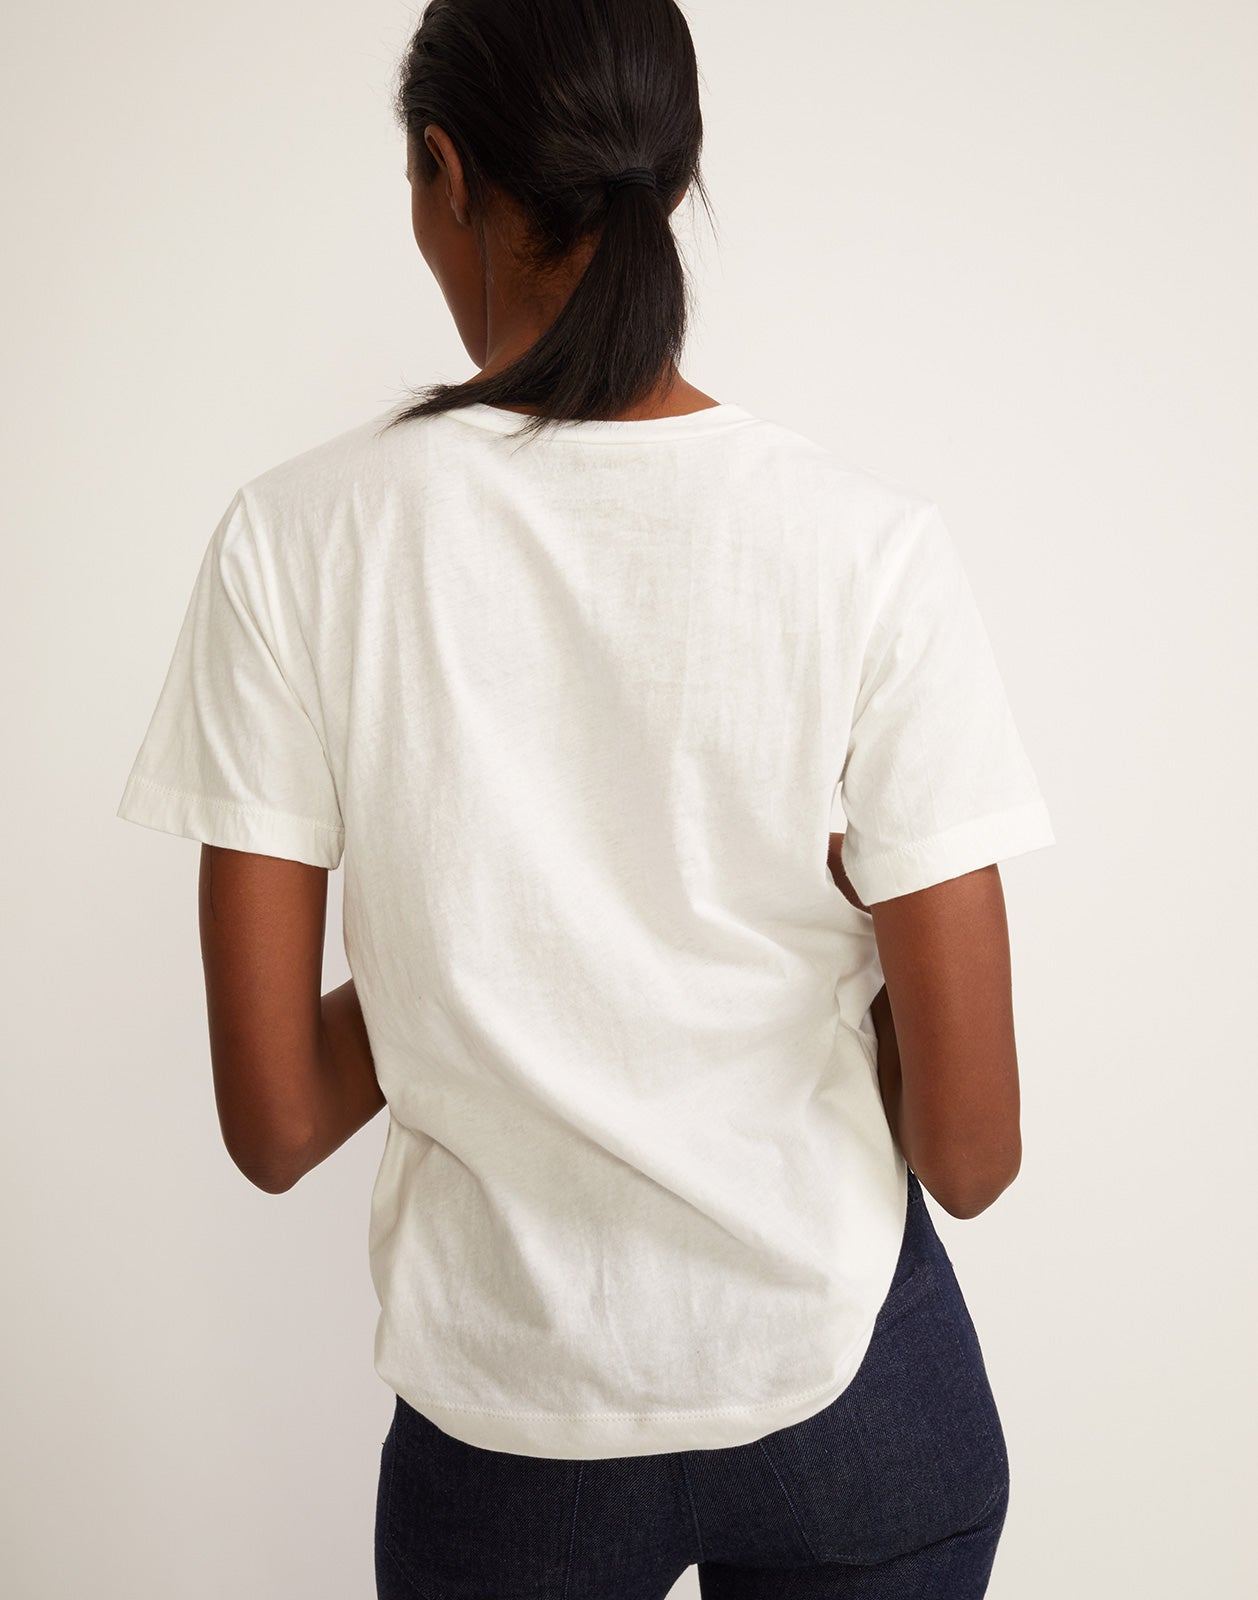 Back view of 'buttercup' printed tee.